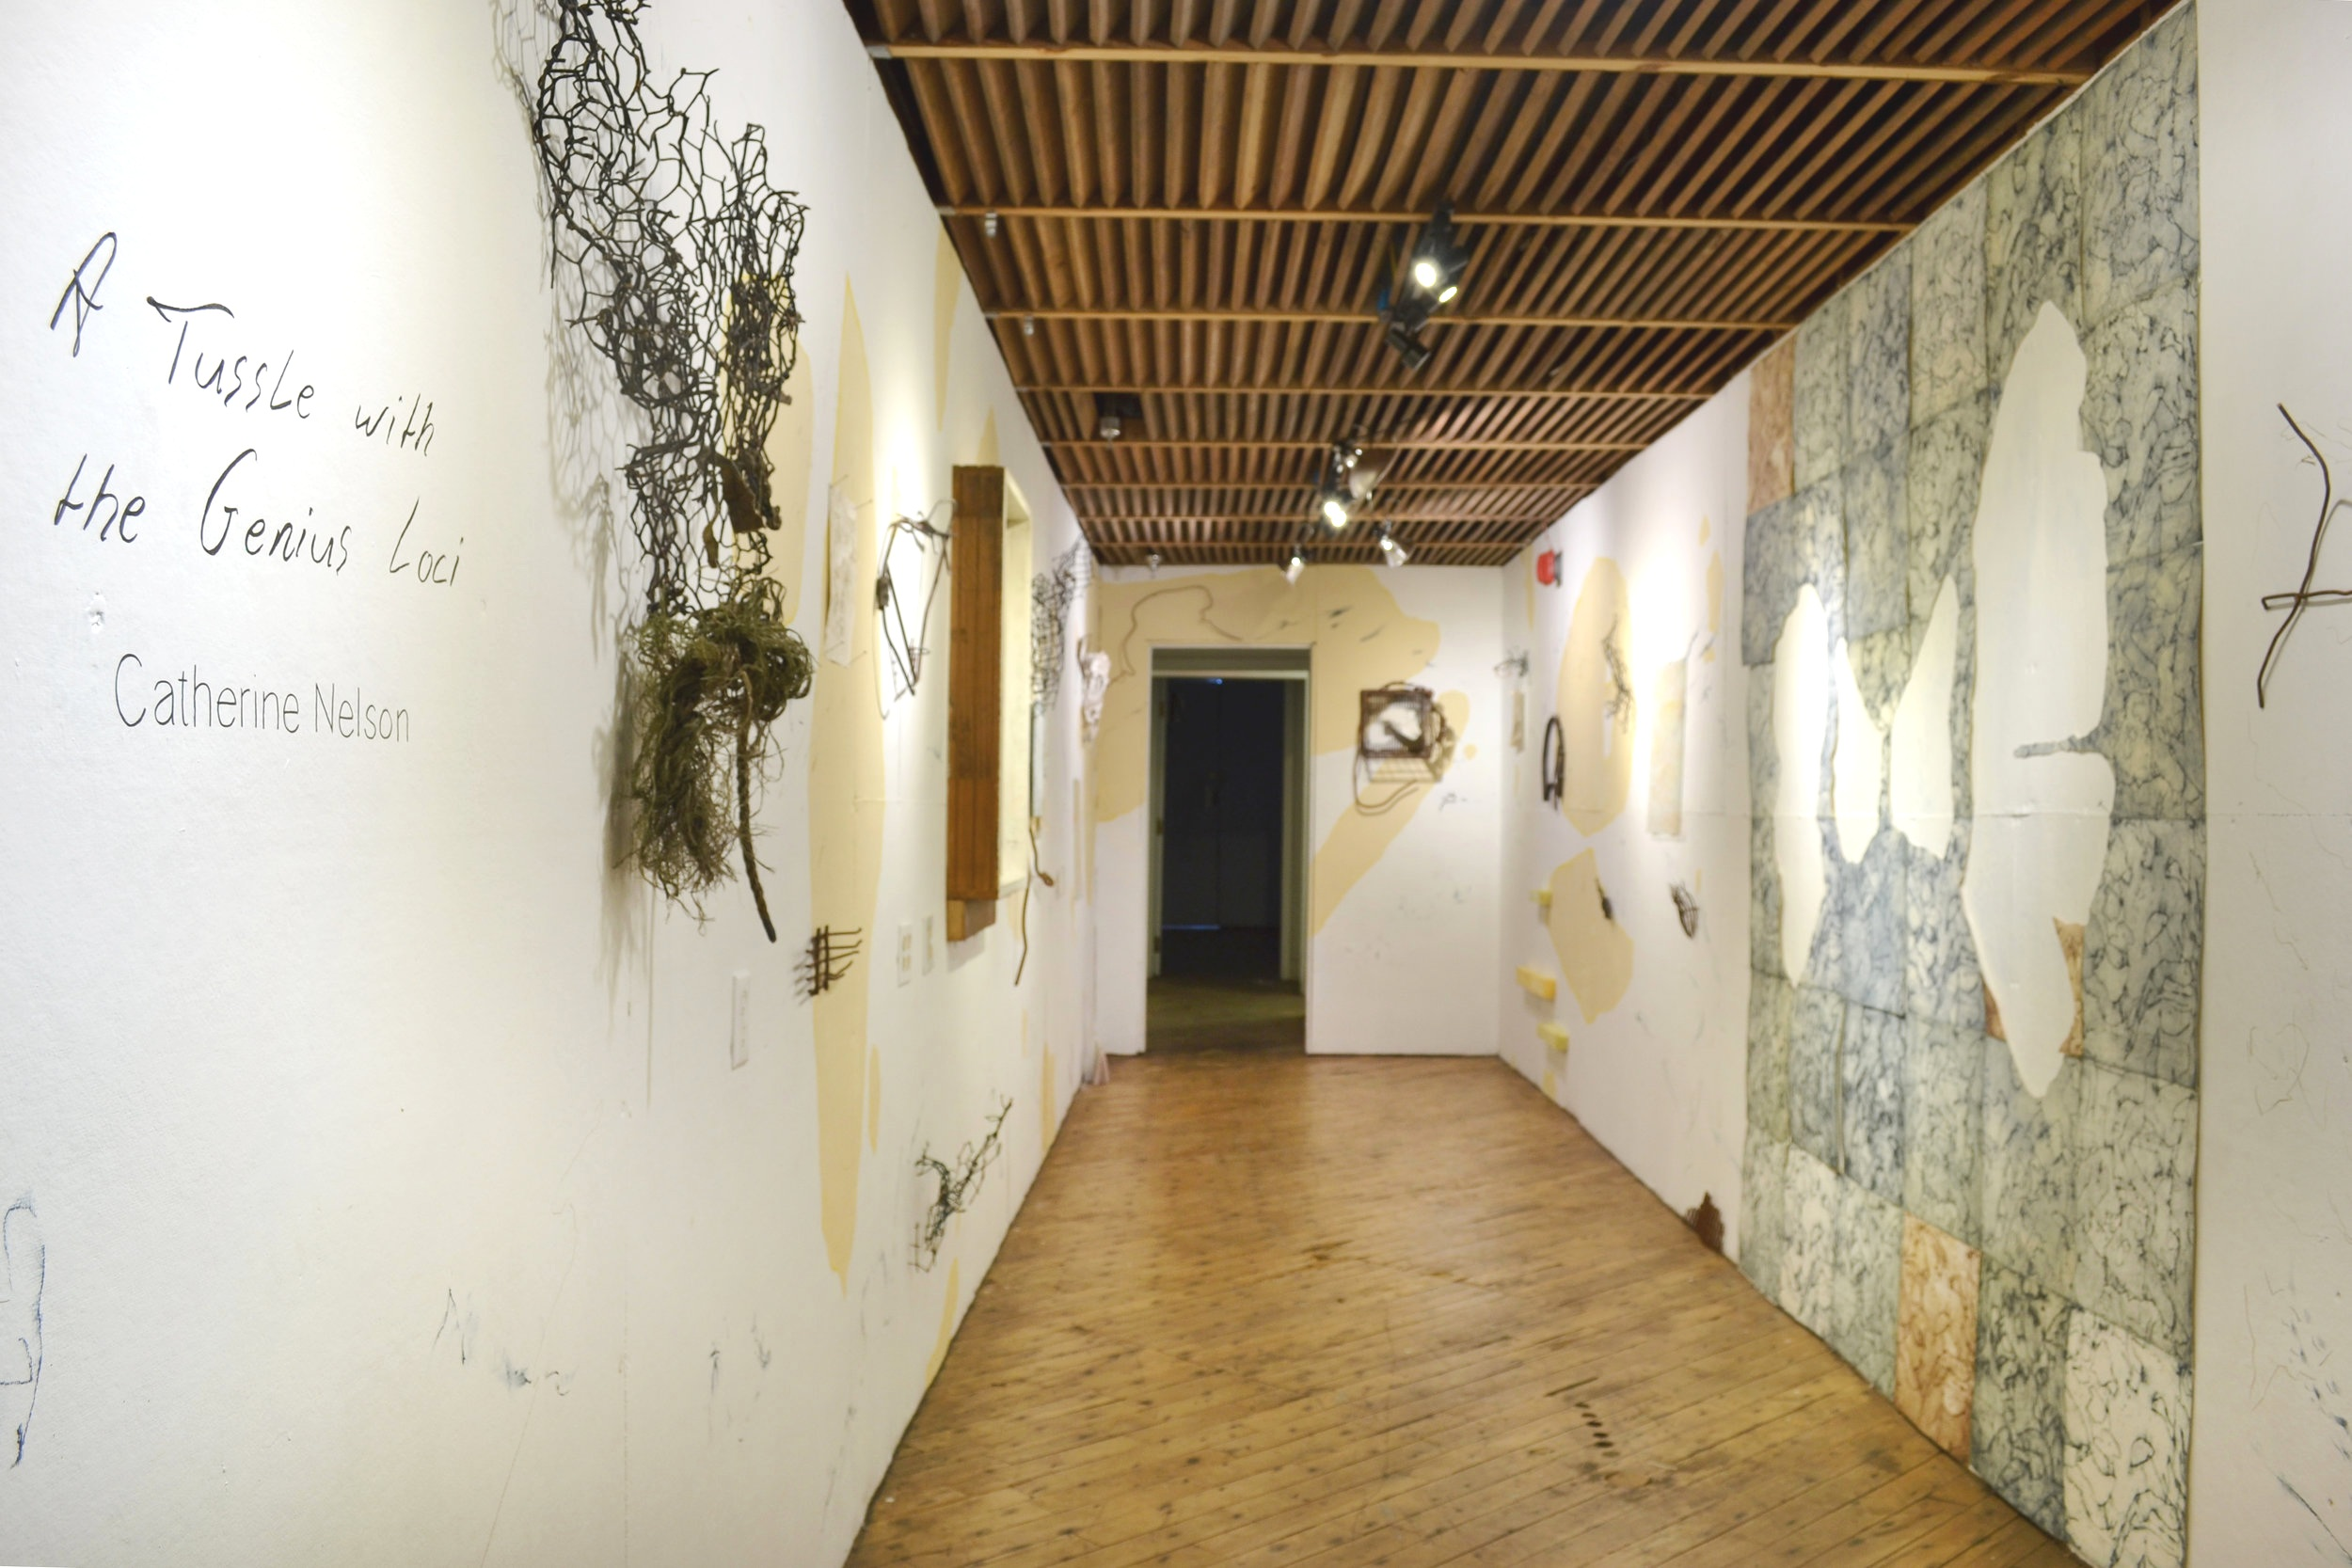 Nelson's installation, composed with tea-dyed collagraph prints, steel collage sculptures, found objects, drawings on glass, papier mache, surface prints from the bayou, and direct wall drawing